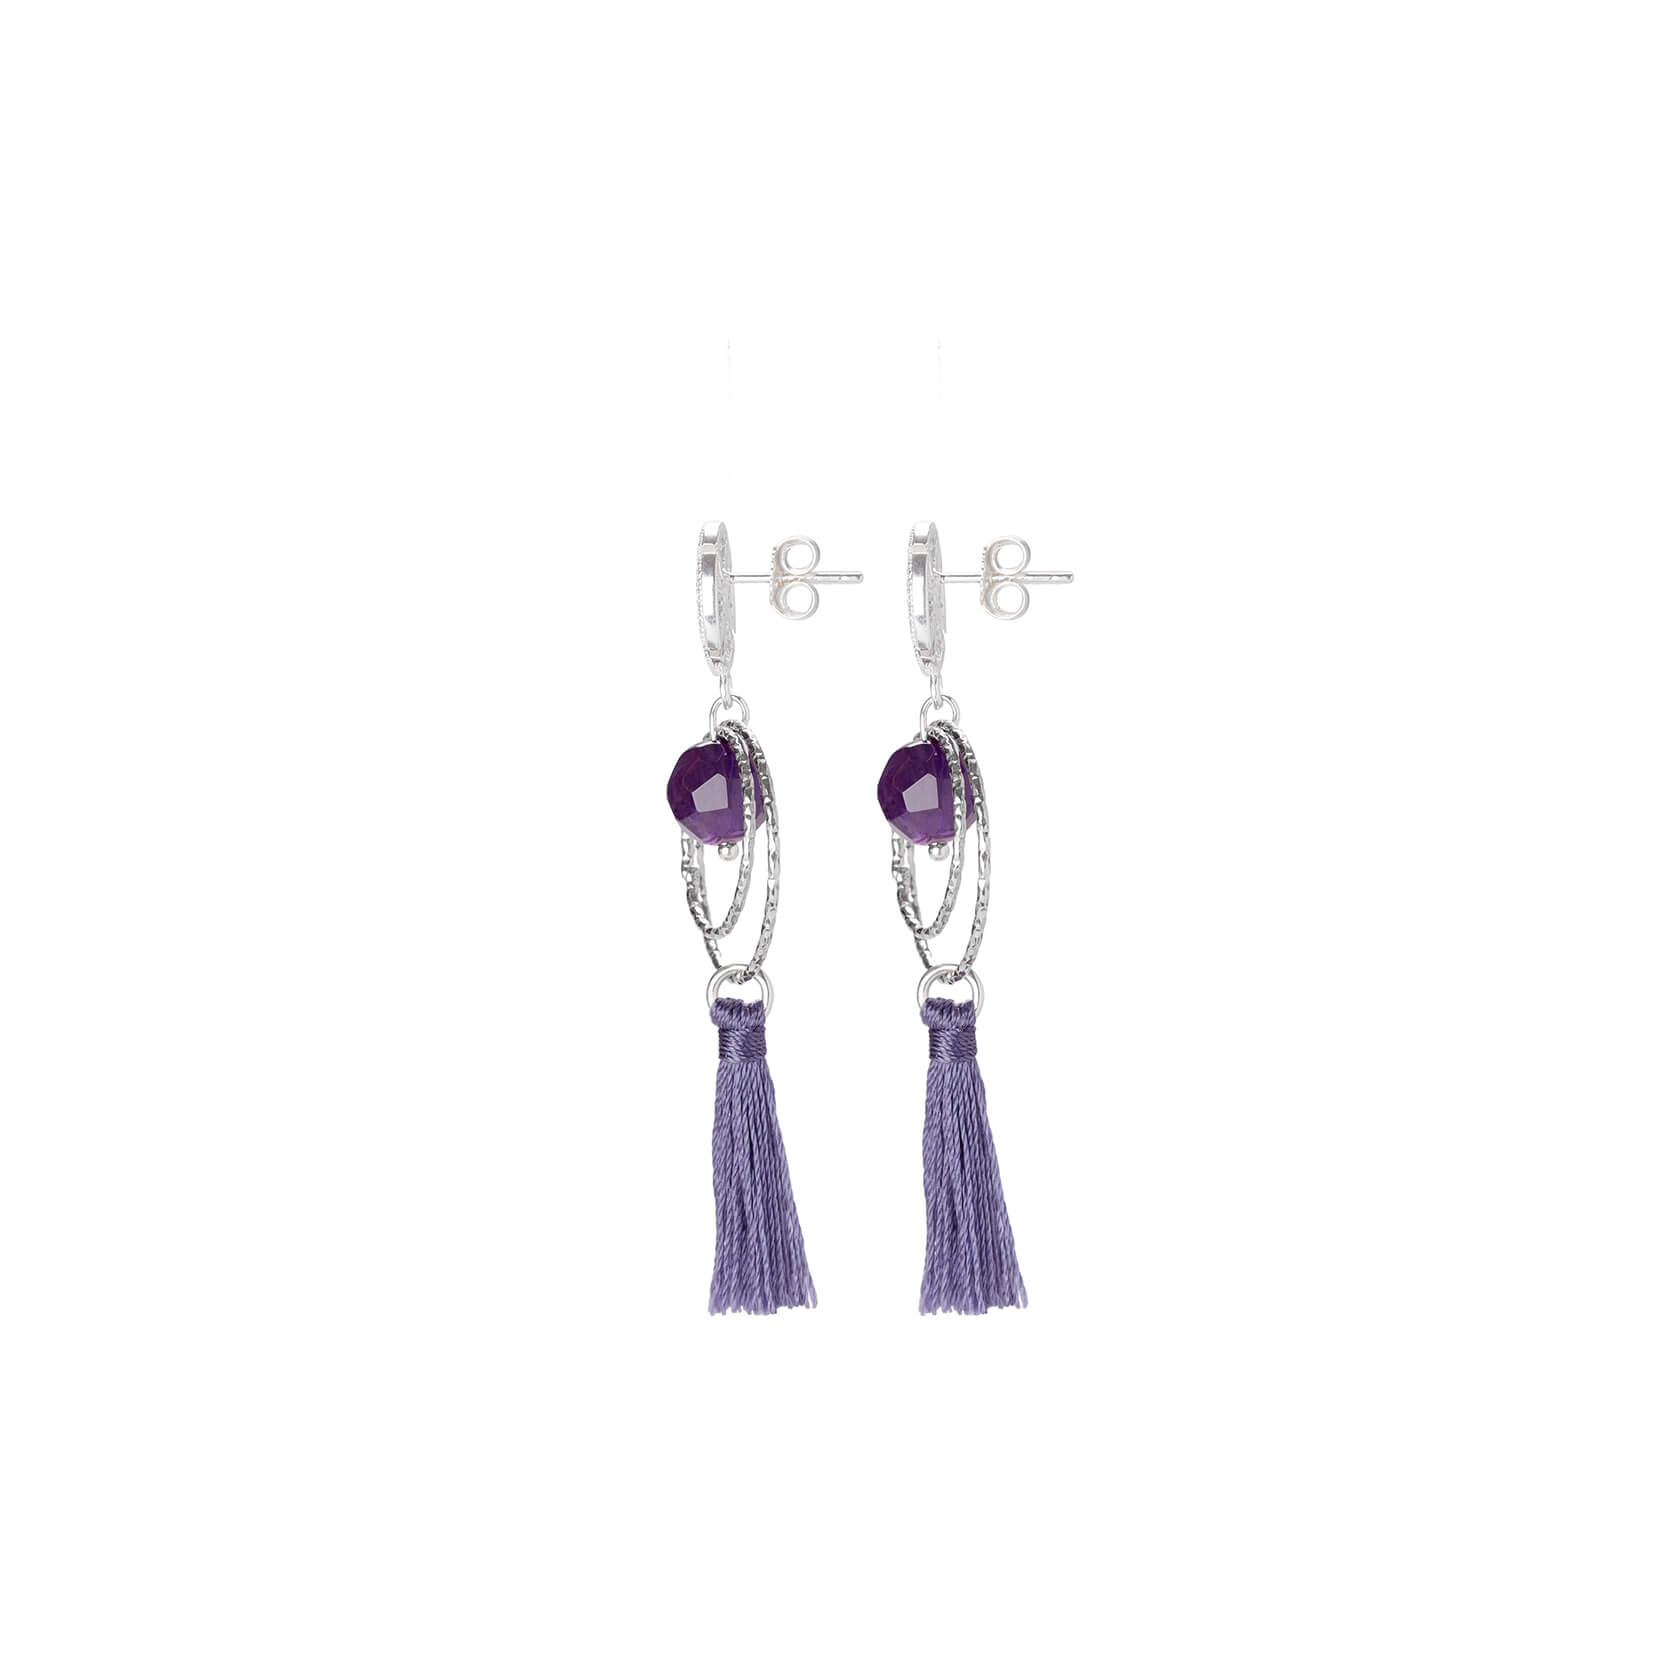 Esenciales amethyst earrings